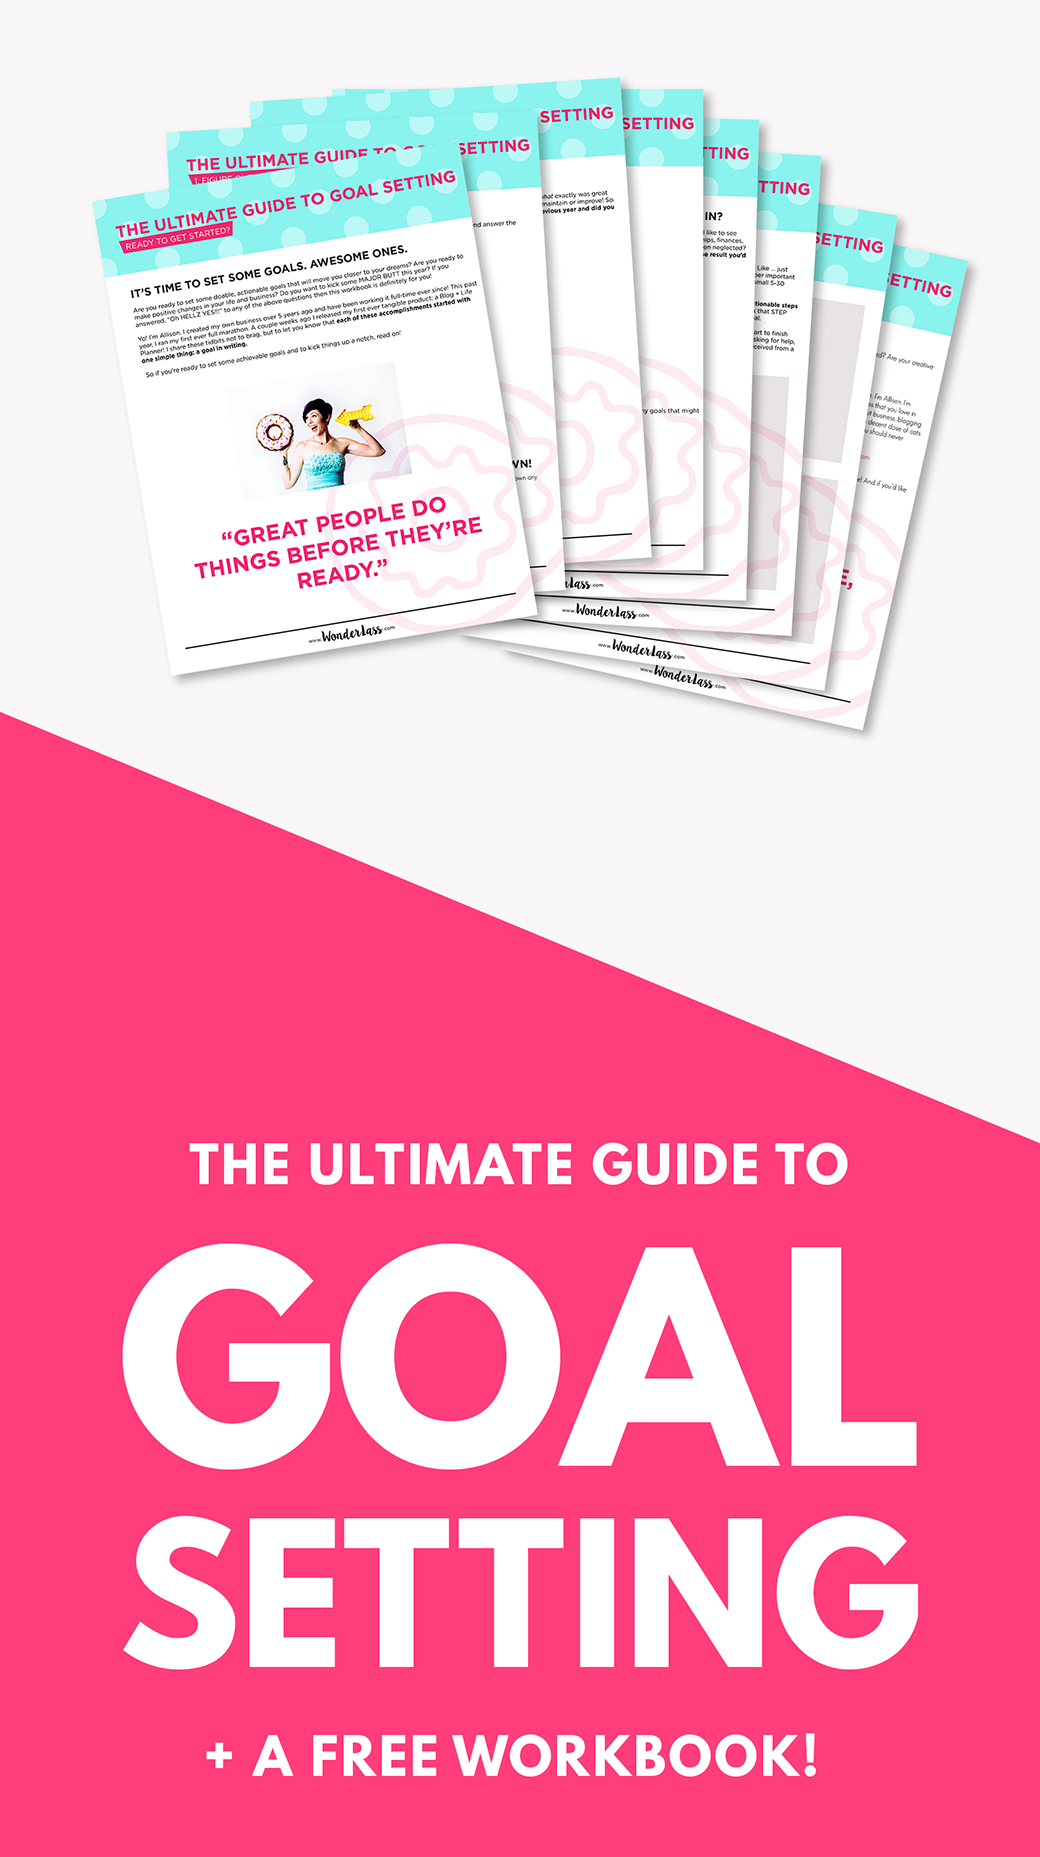 The Ultimate Guide to Goal Setting